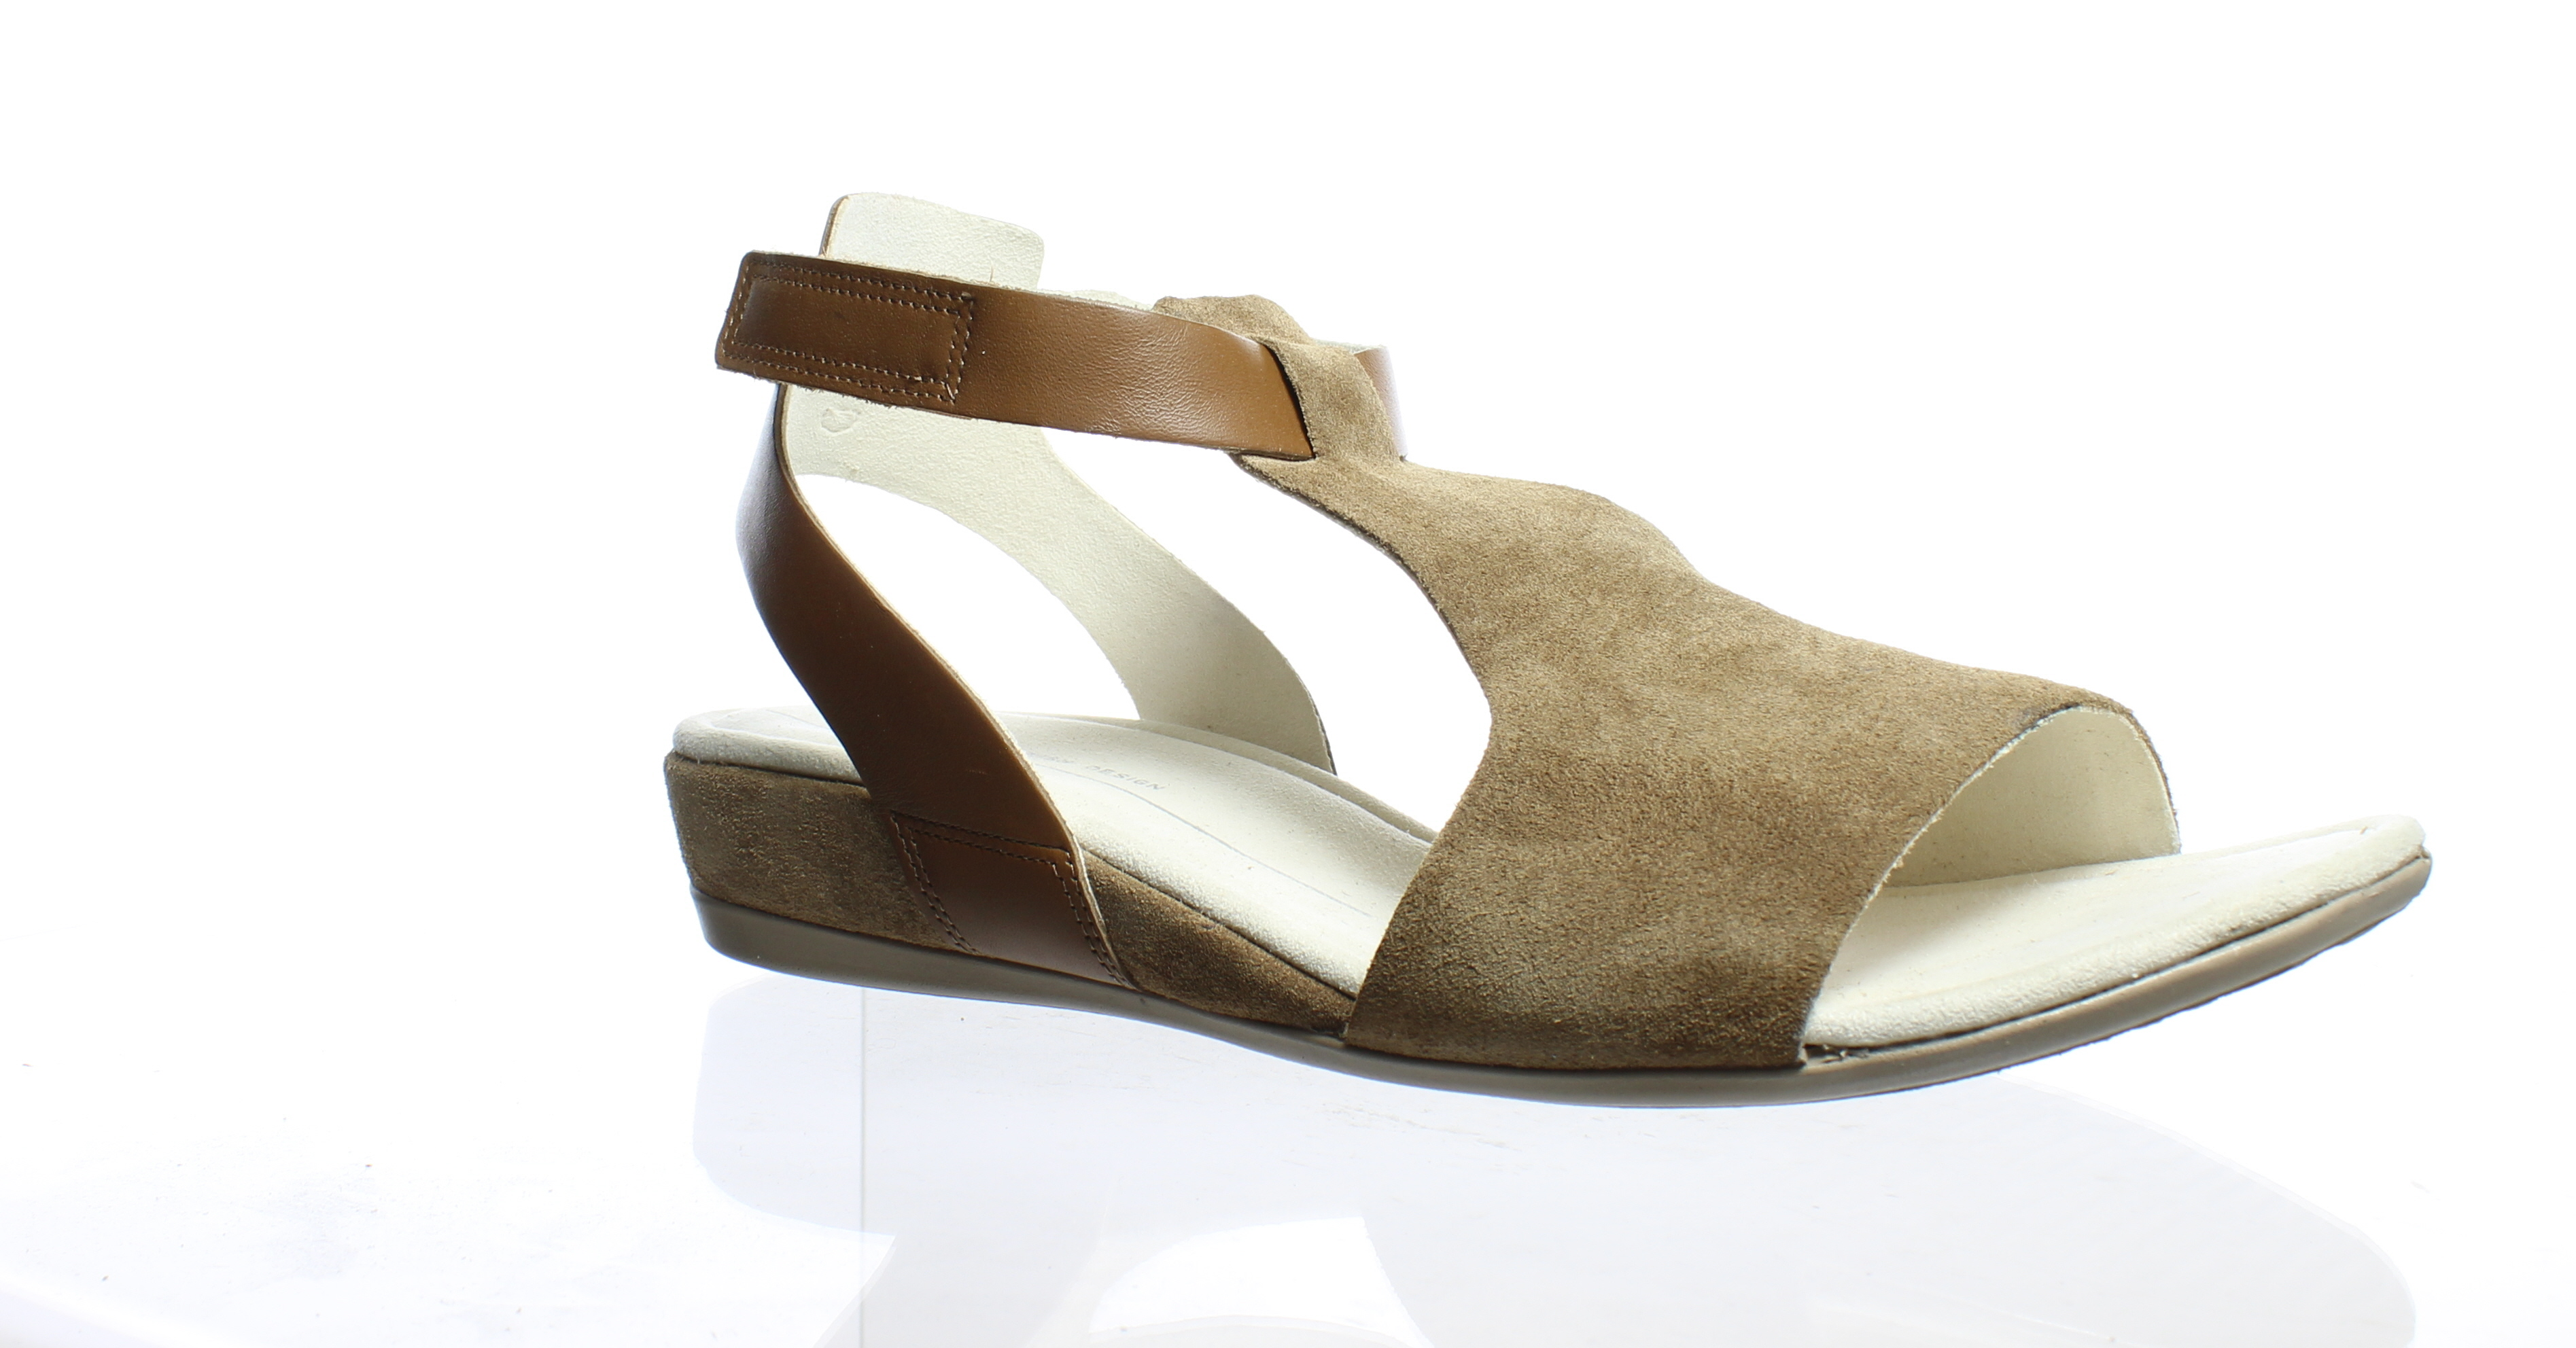 ca3d9a03cc8 ECCO Womens Touch 25 Camel Camel Ankle Strap Flats Size 9 ...